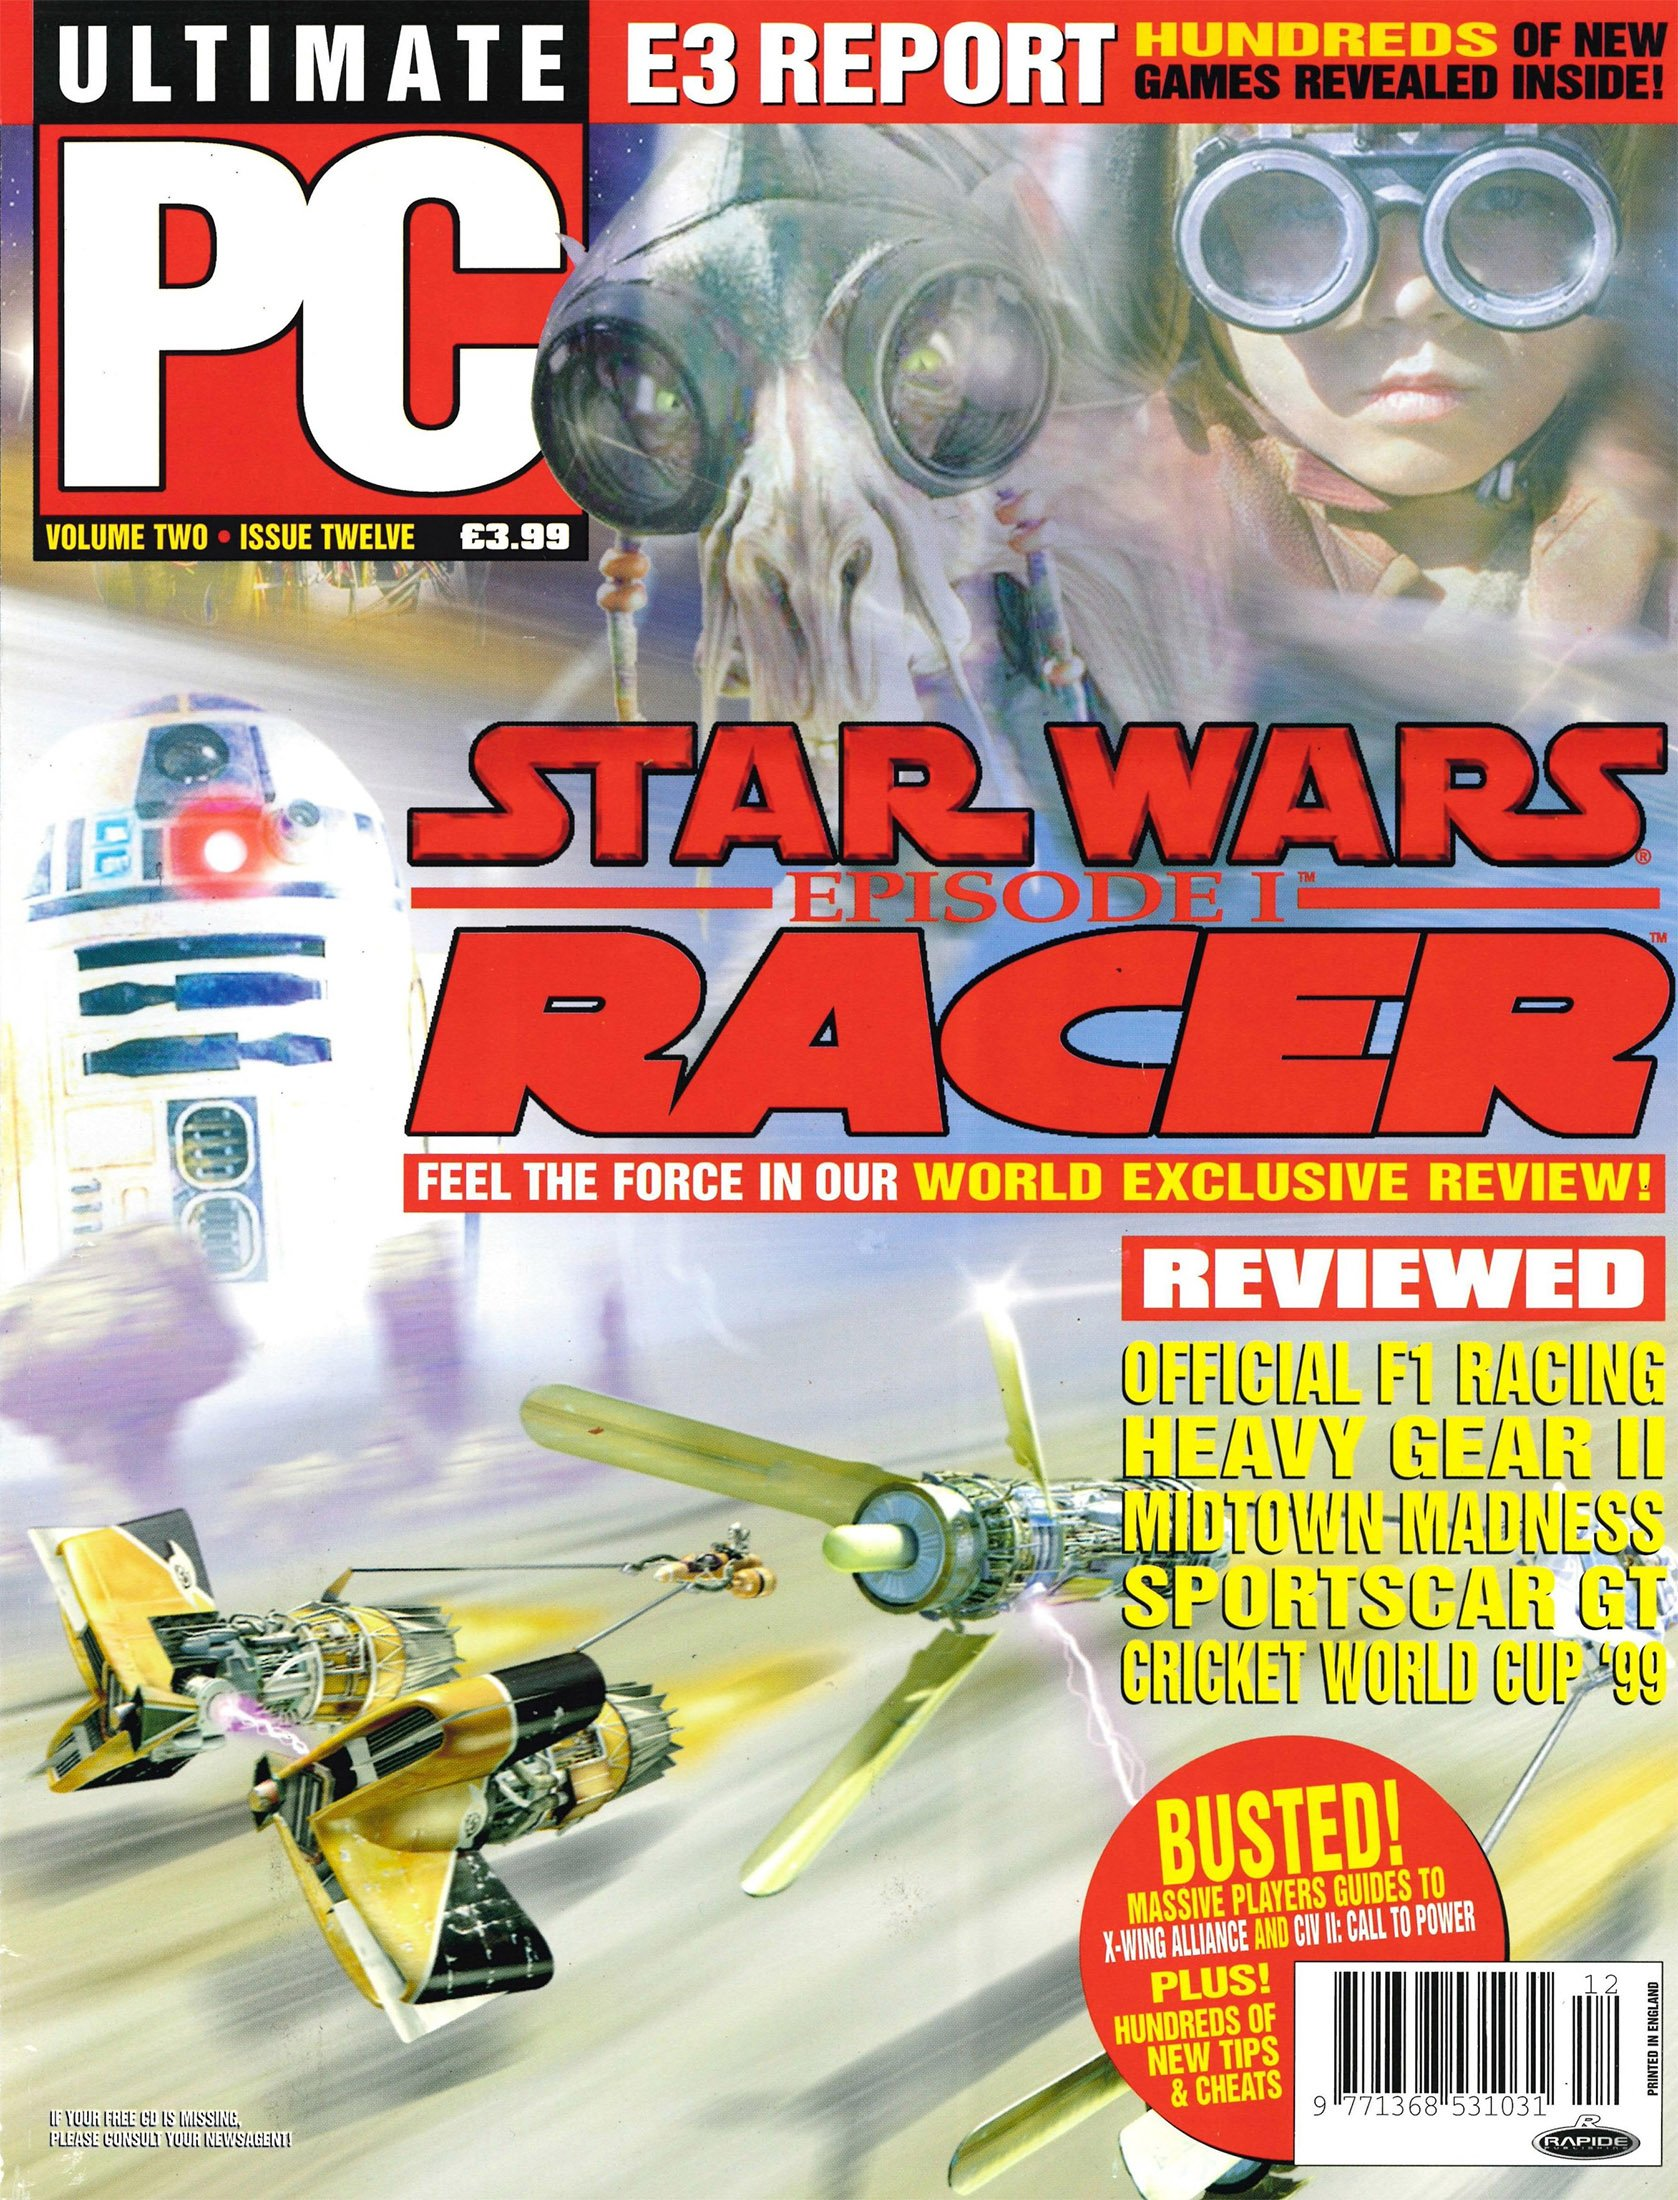 Ultimate PC Volume 2 Issue 12 (July 1999)